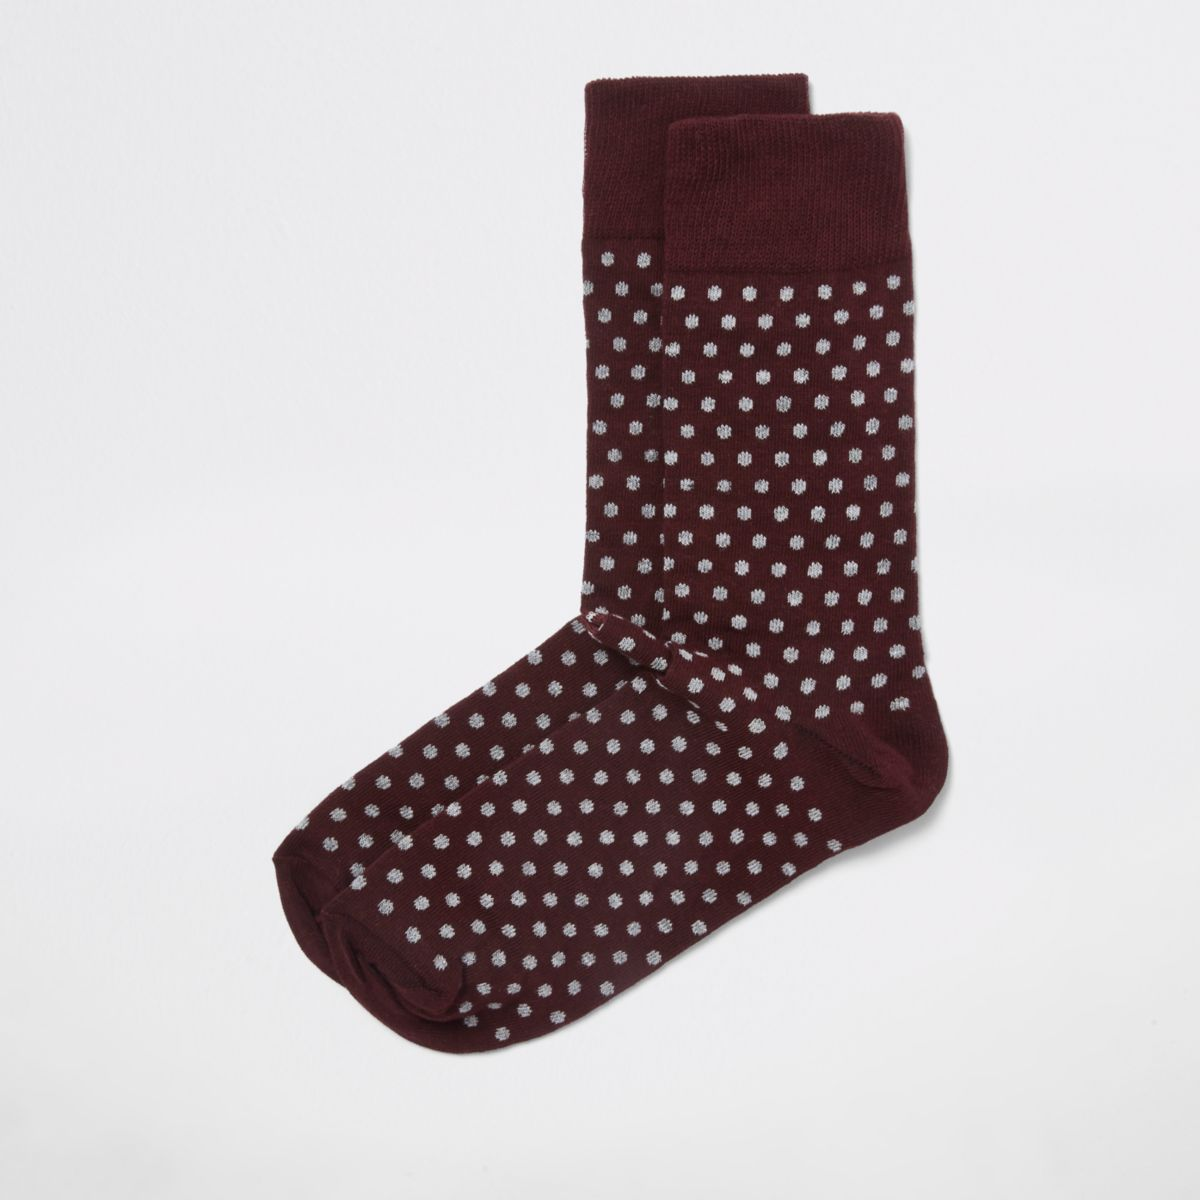 Burgundy polka dot socks